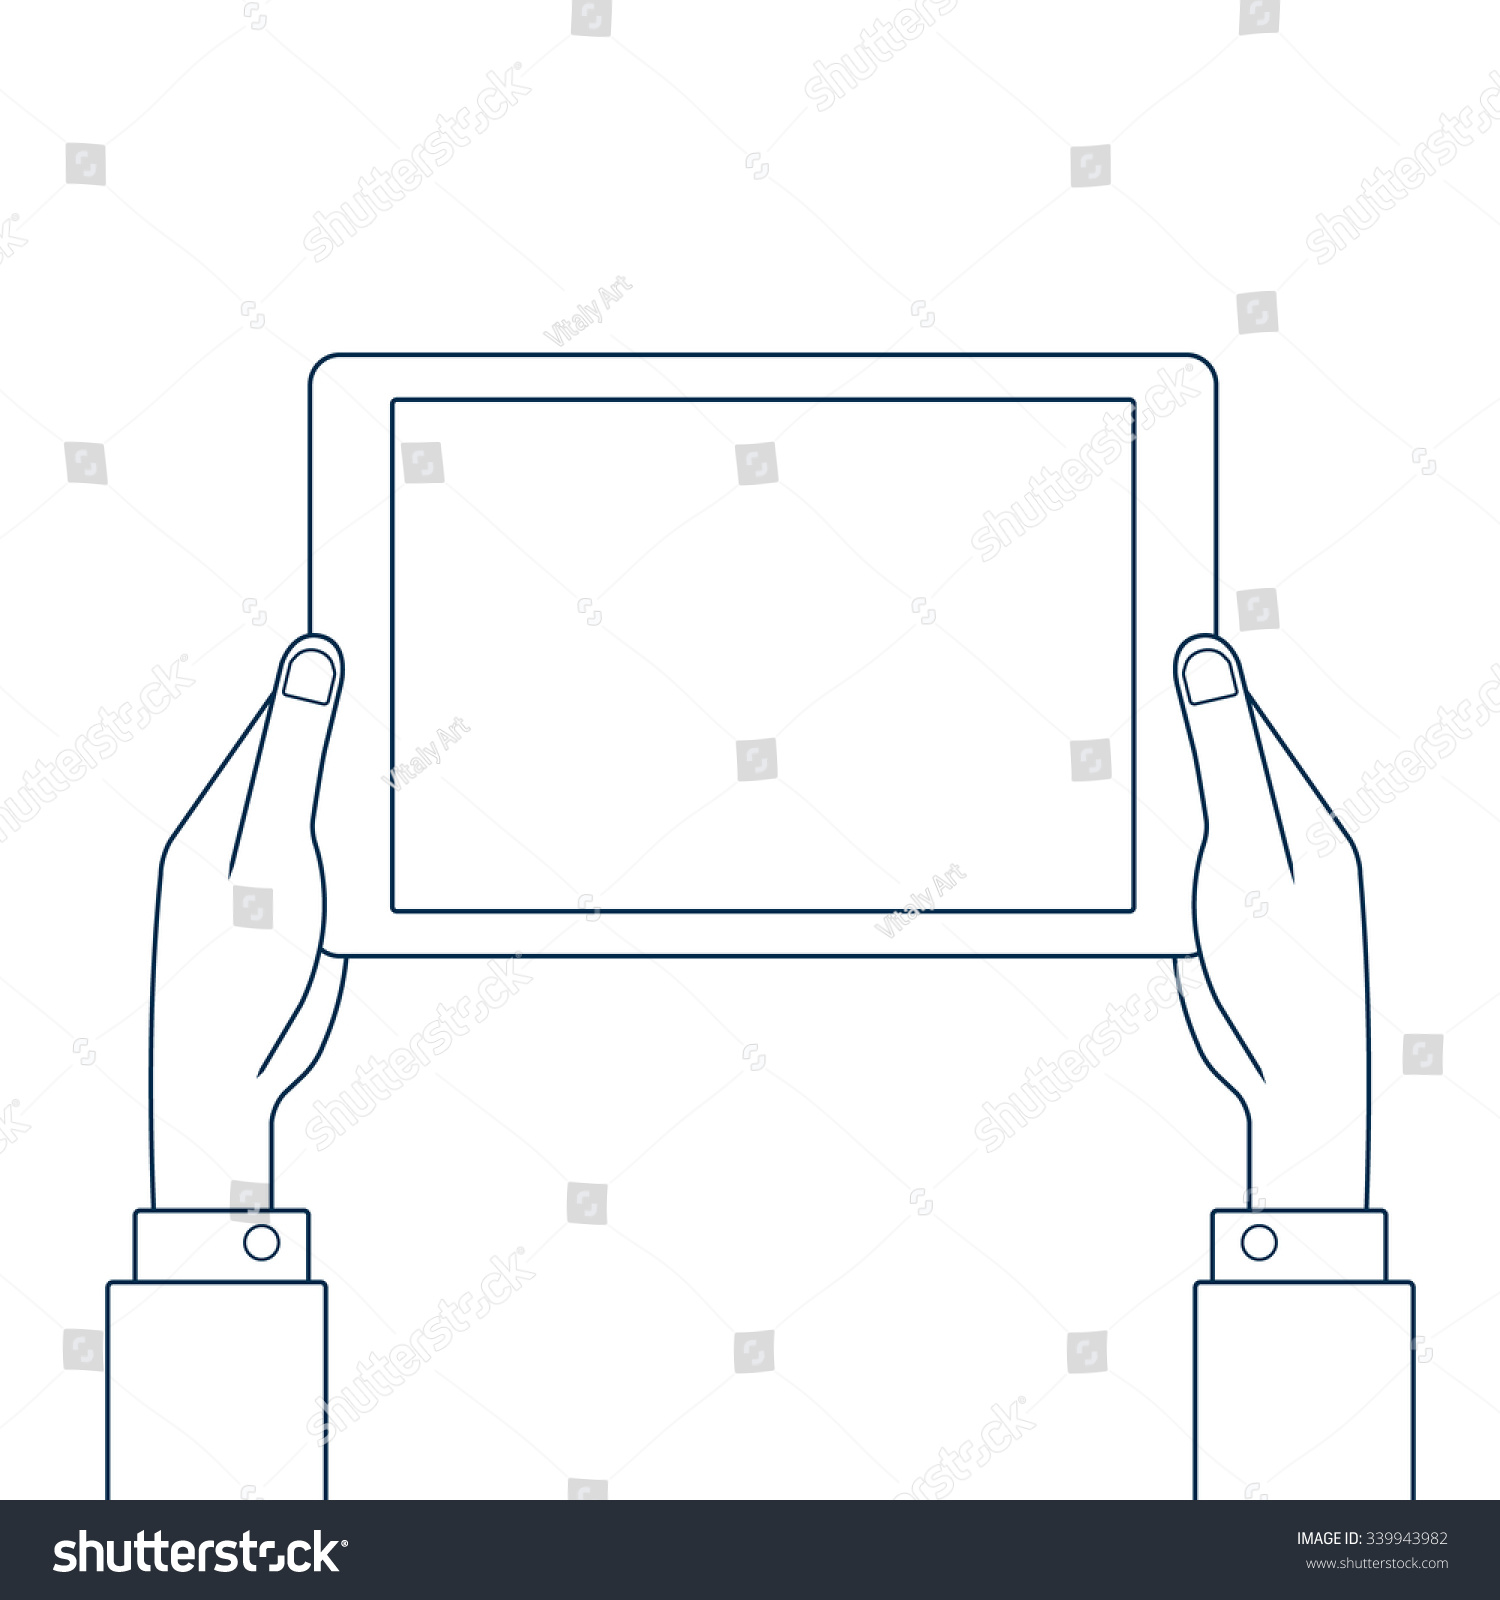 Drawing Lines With Tablet : Hands holding tablet pc line drawing stock vector